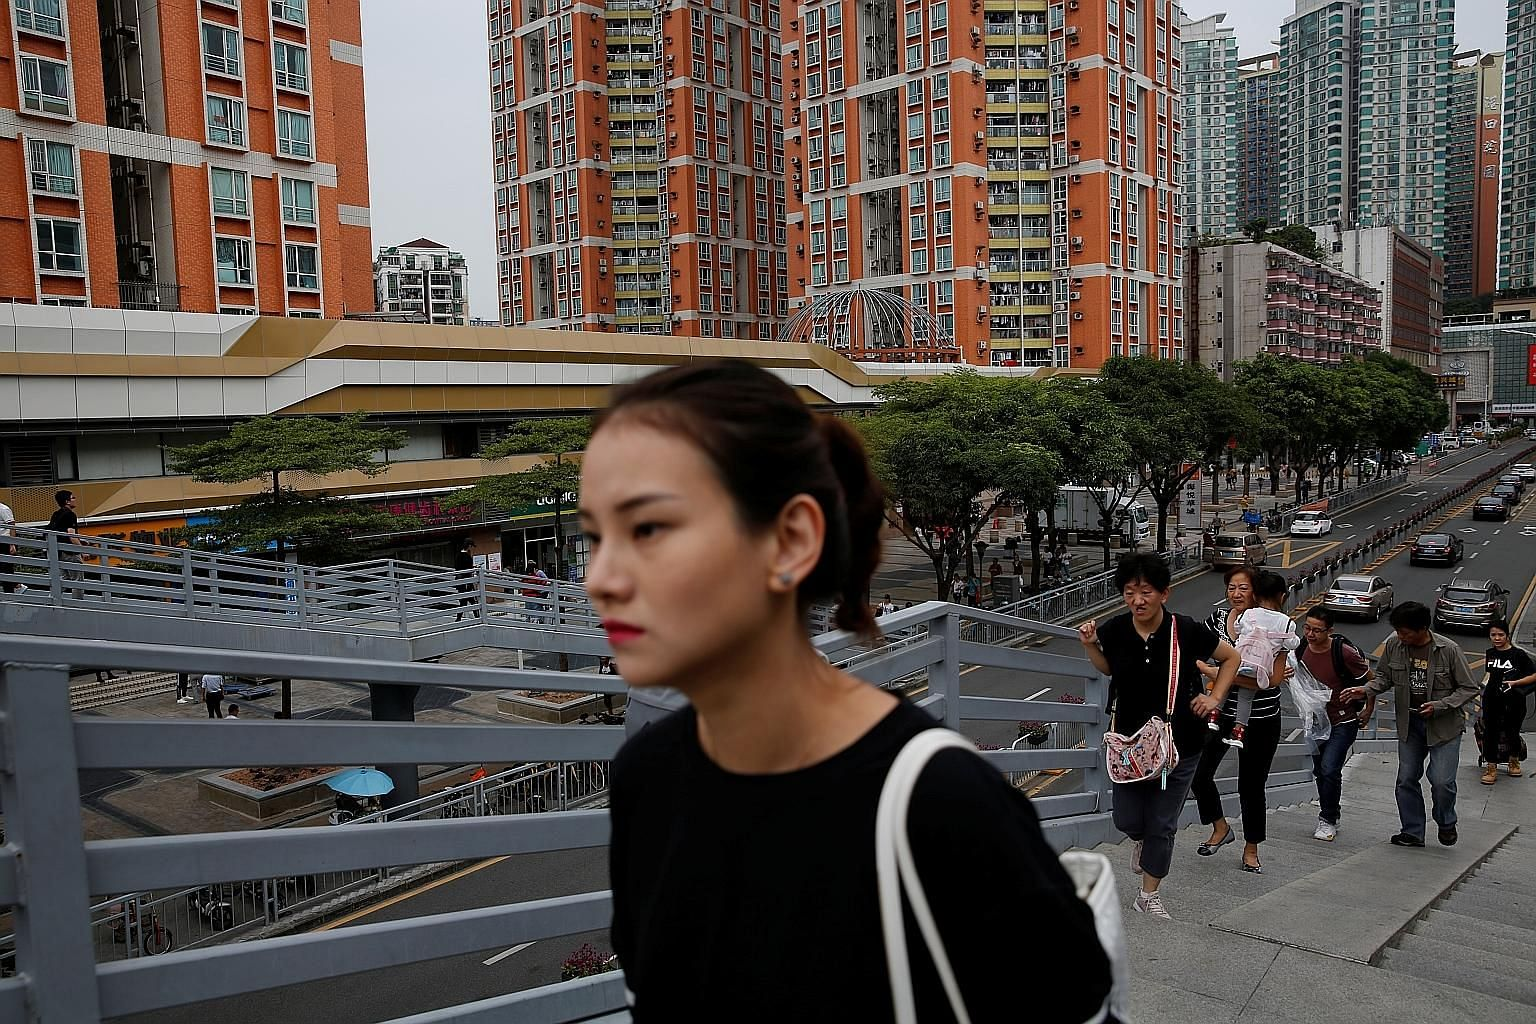 New residential flats in Shenzhen, near the Hong Kong-Shenzhen border. December's 6.6 per cent price growth was the slowest pace since July 2018, and significantly weaker than the 9.7 per cent gain seen in December 2018.